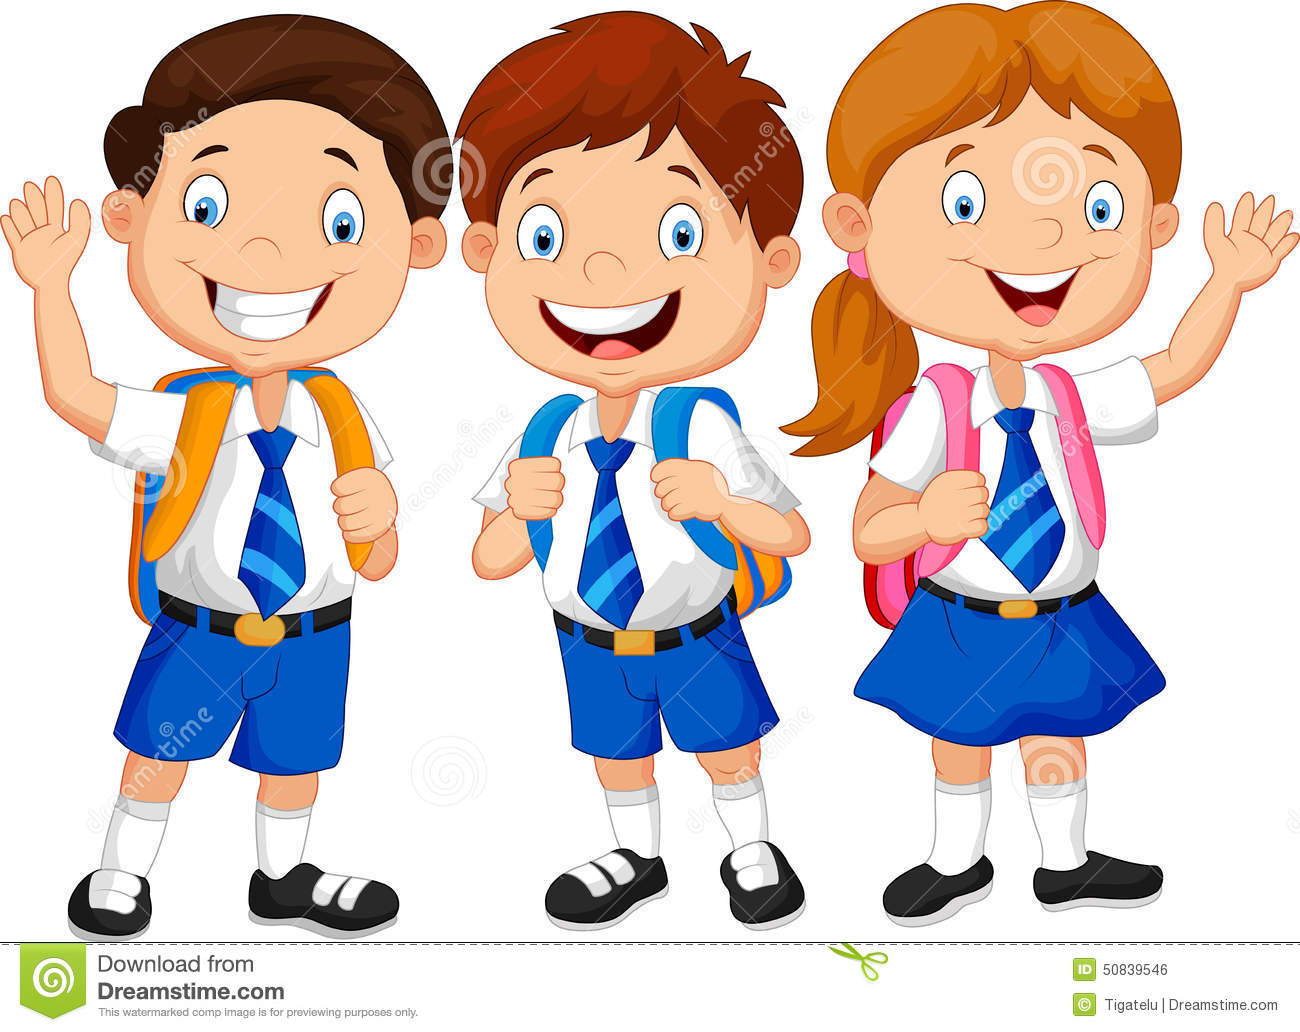 School kids character clipart vector black and white download School kids character clipart - ClipartFest vector black and white download